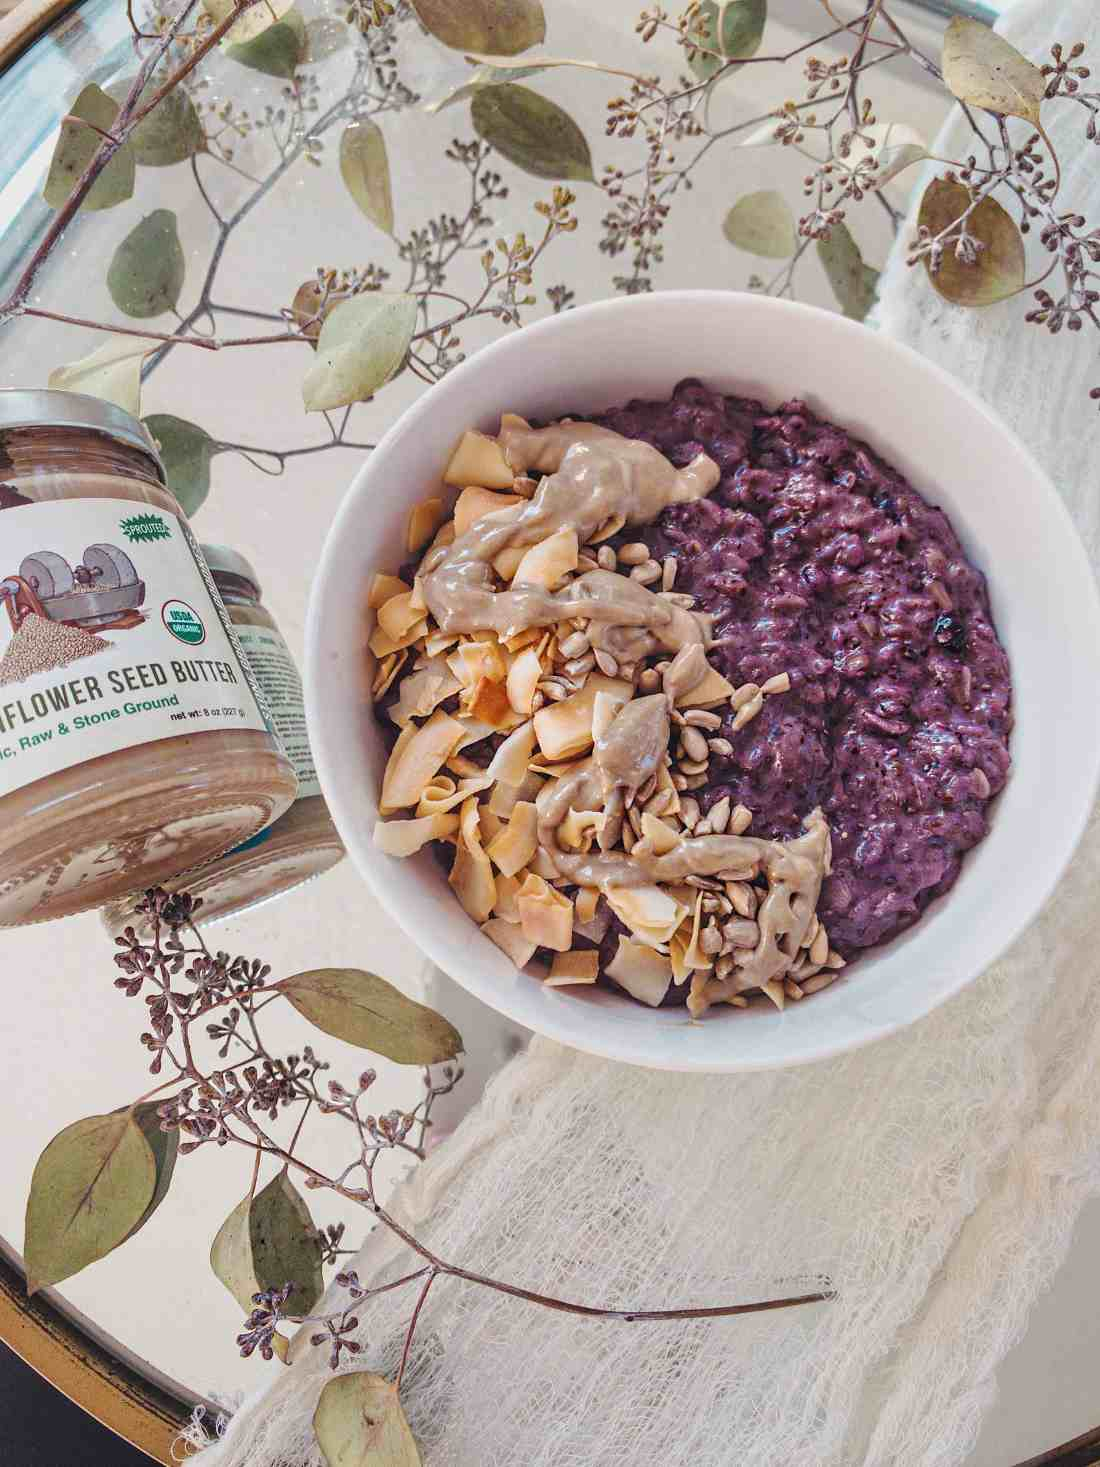 This easy recipe for creamy coconut & blueberry oatmeal is the perfect fall breakfast that'll leave you feeling nourished all morning. Gluten free & vegan!